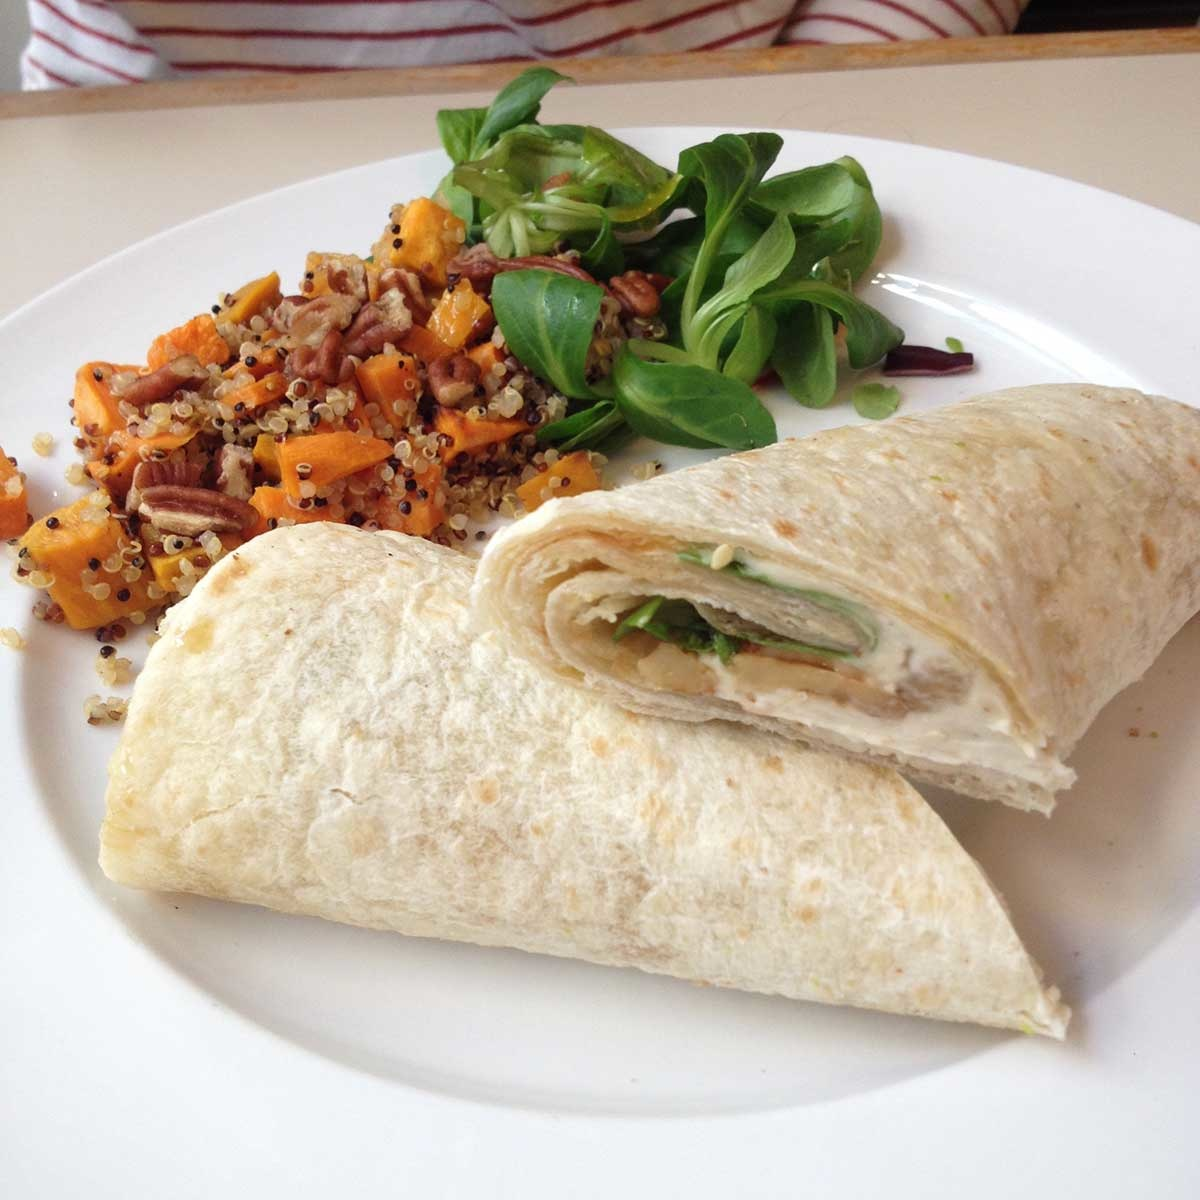 https://i2.wp.com/fatgayvegan.com/wp-content/uploads/2015/12/Daantje-vegan-Dordrecht-vegan-brie-maple-syrup-walnut-wrap.jpg?fit=1200%2C1200